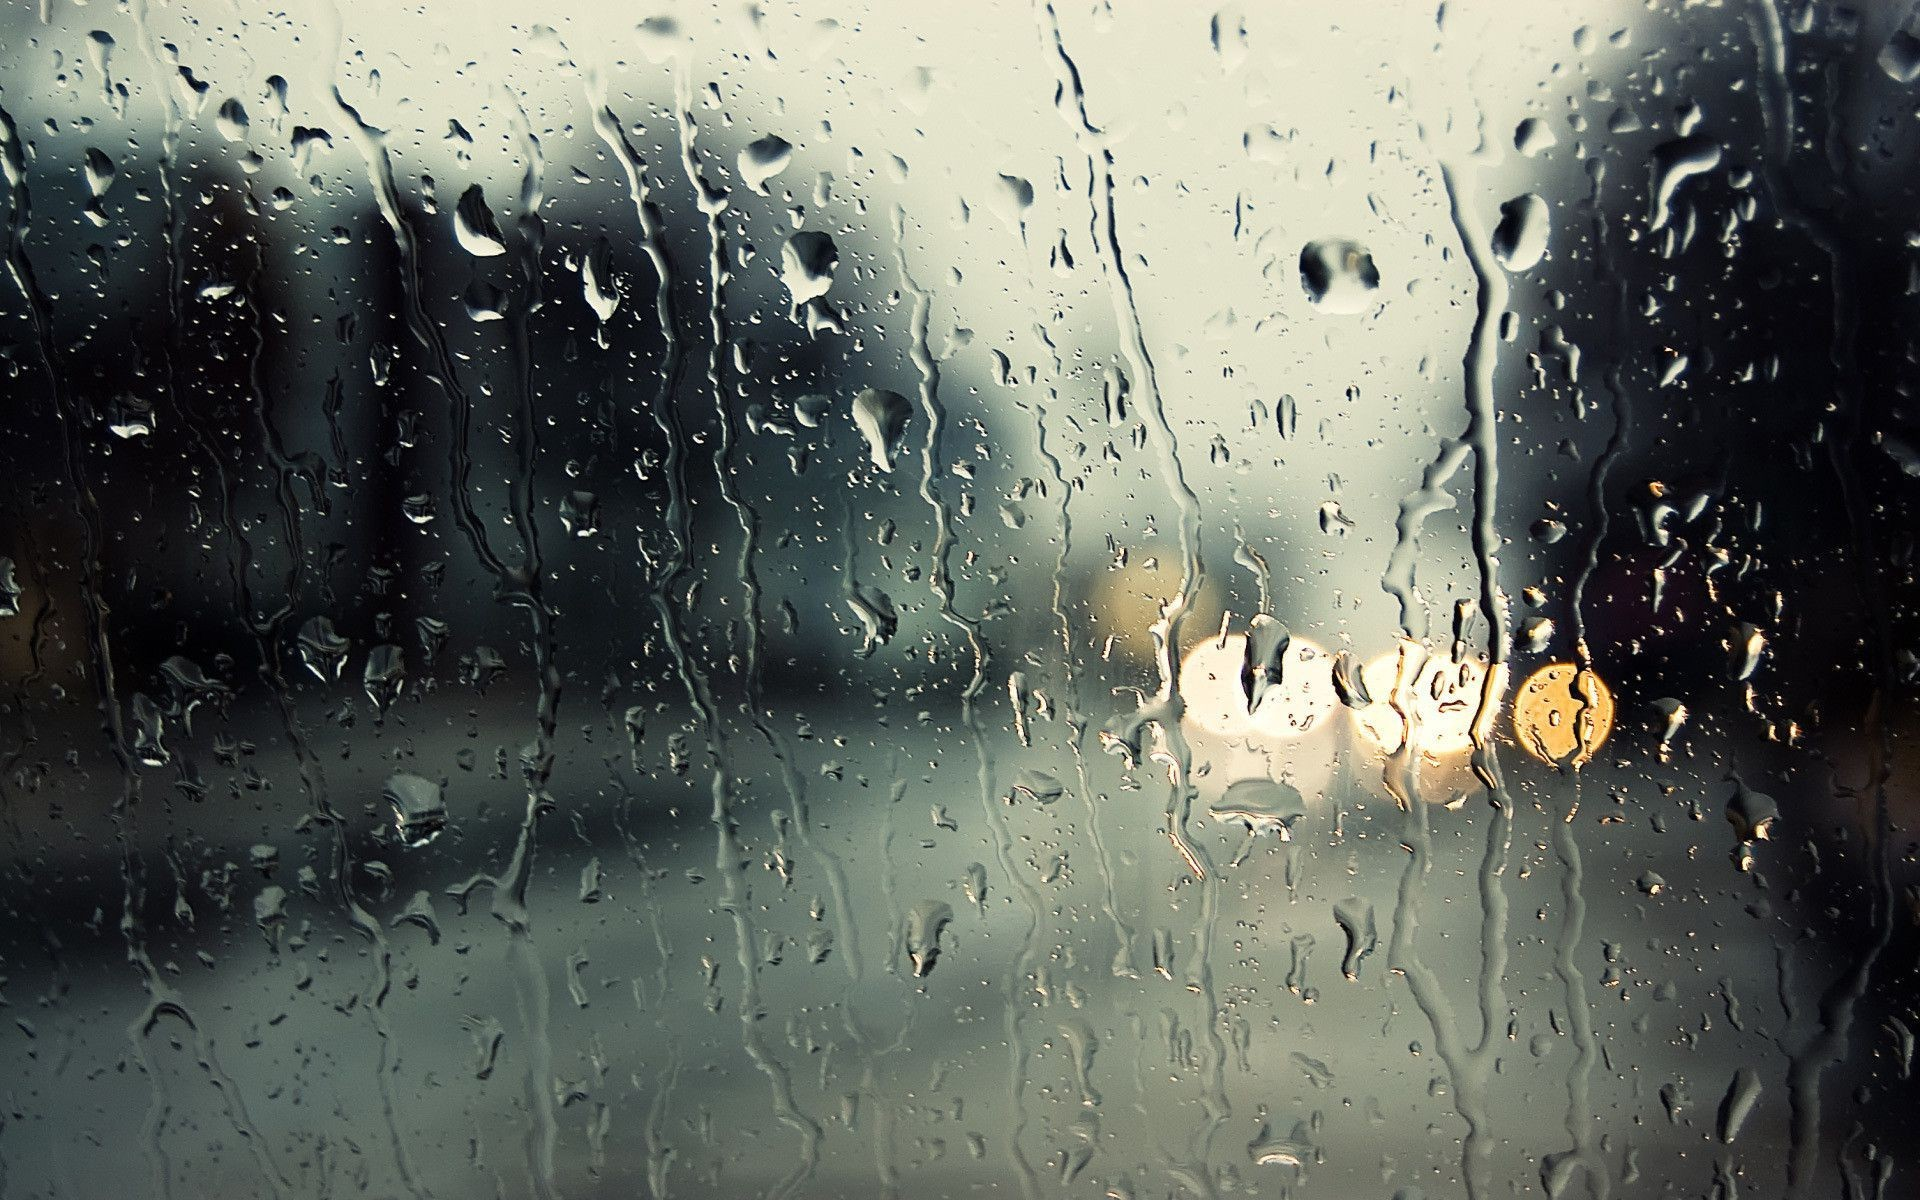 rainy background ·① download free beautiful full hd backgrounds for